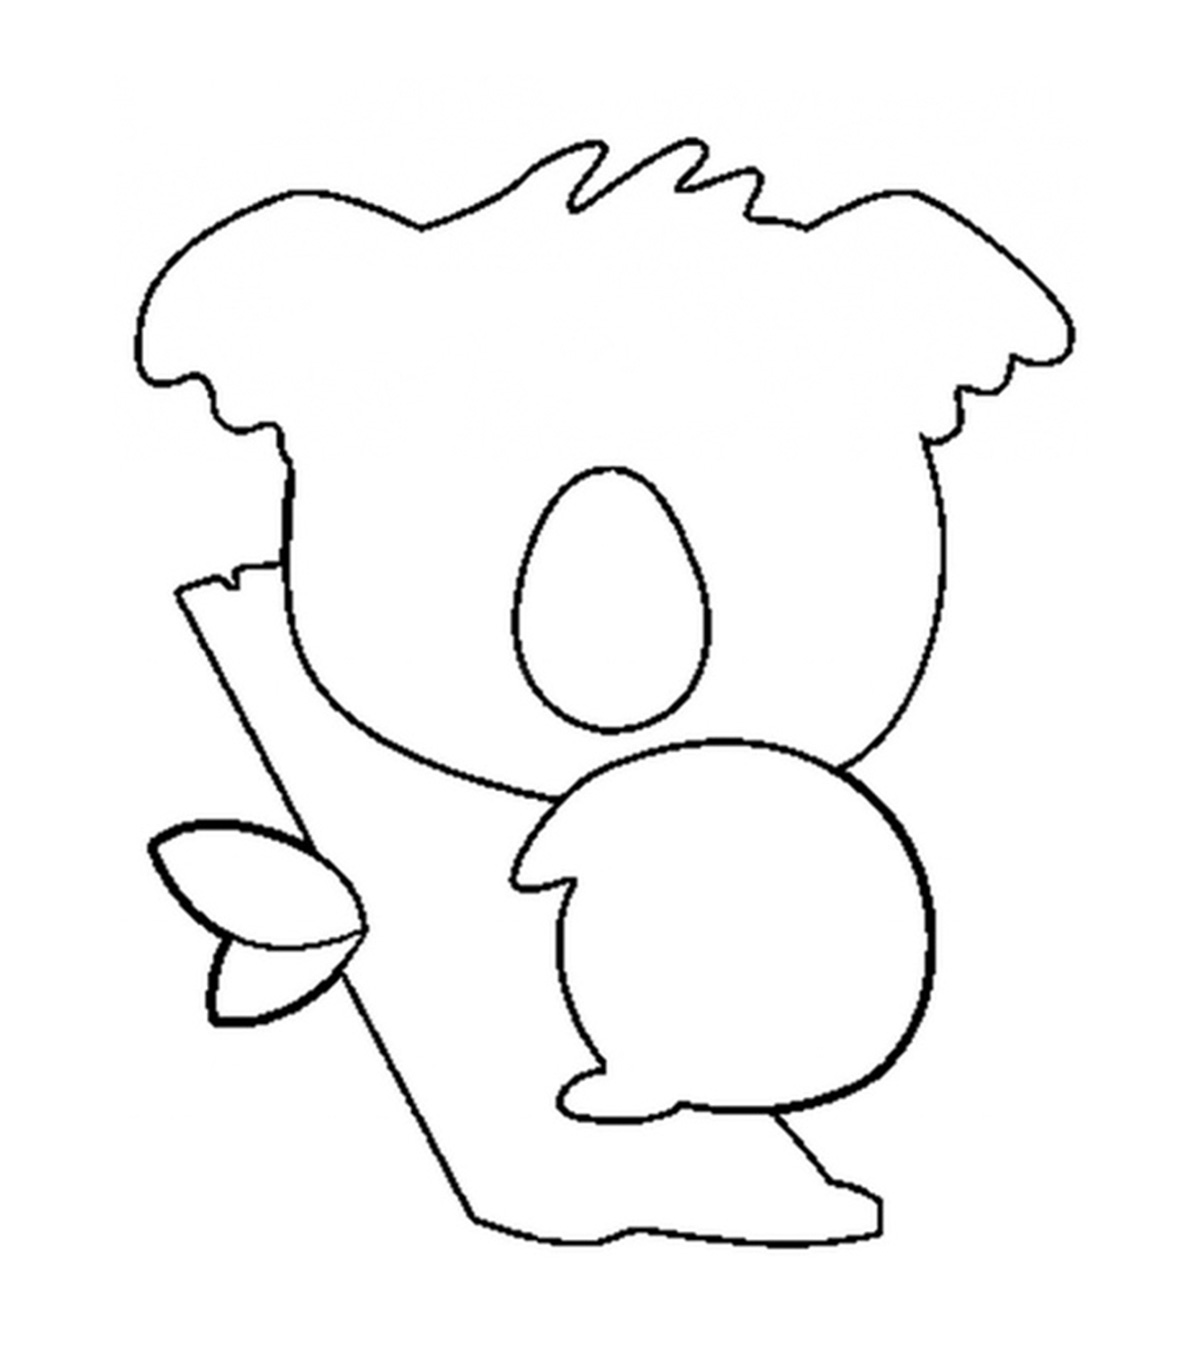 Koala Coloring Pages For Kids: Hop A Ride With a Koala! | 1350x1200